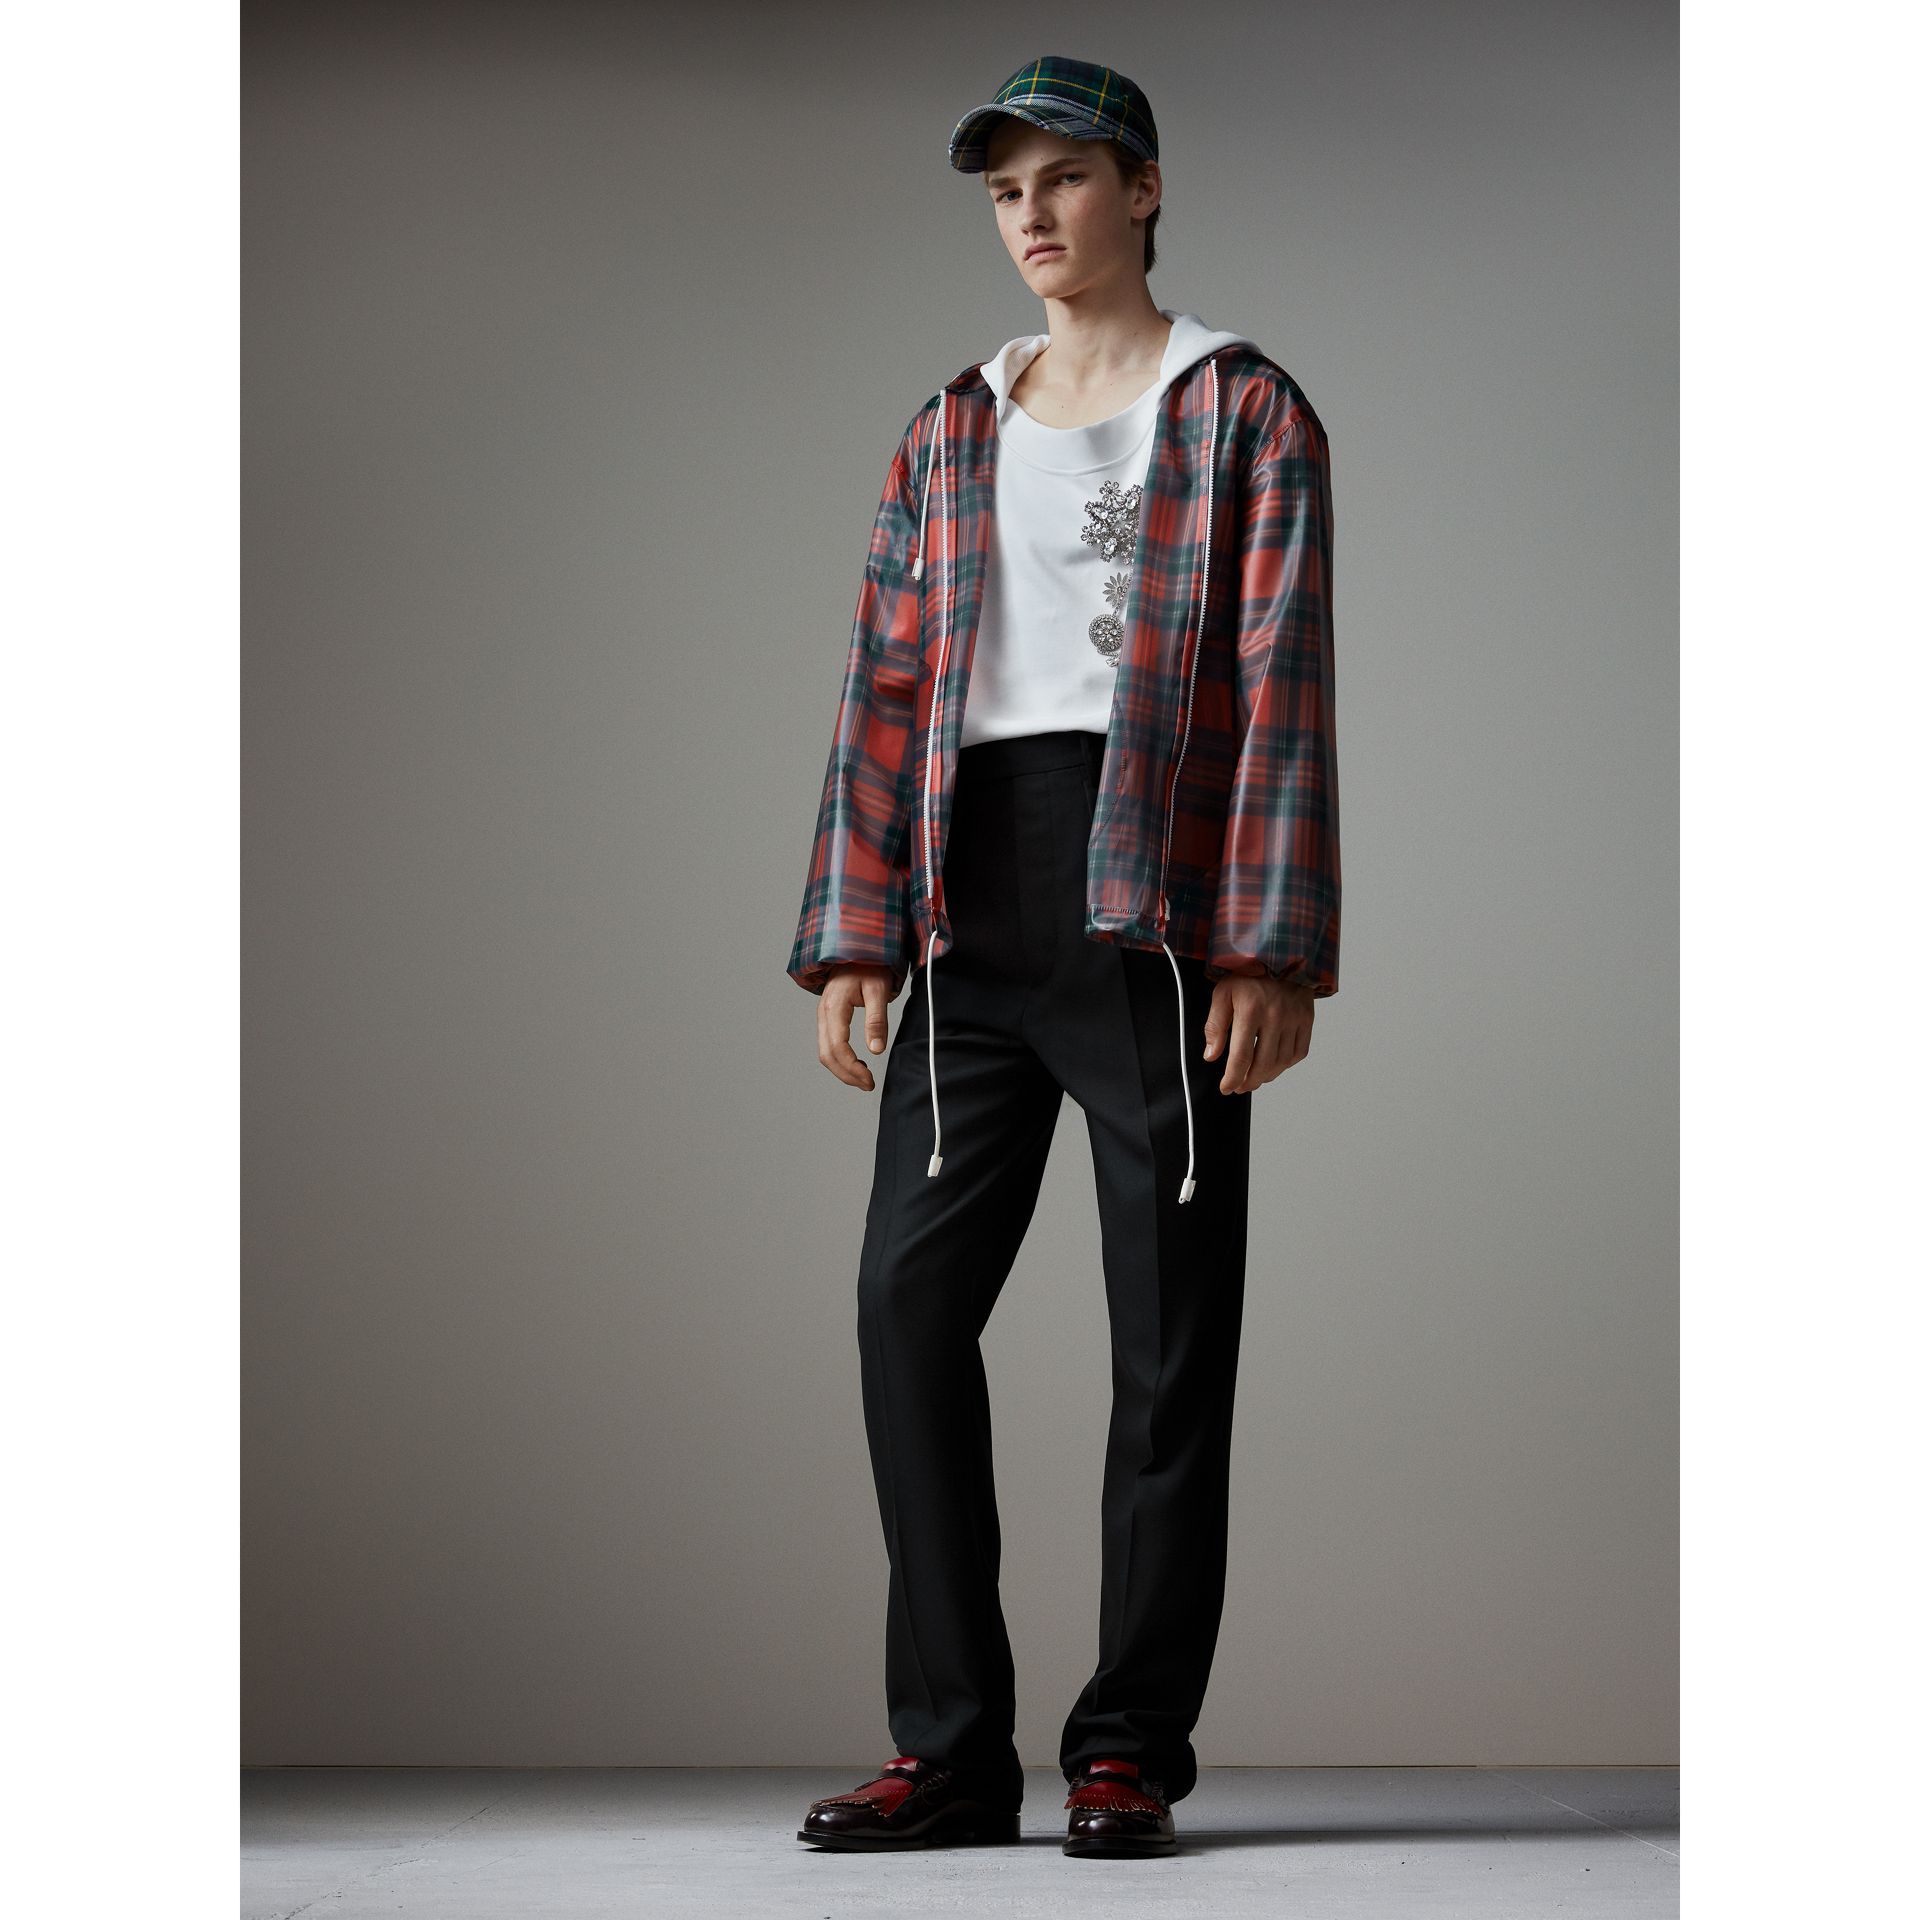 Tartan Soft-touch Plastic Cagoule in Bright Red - Men | Burberry Singapore - gallery image 1